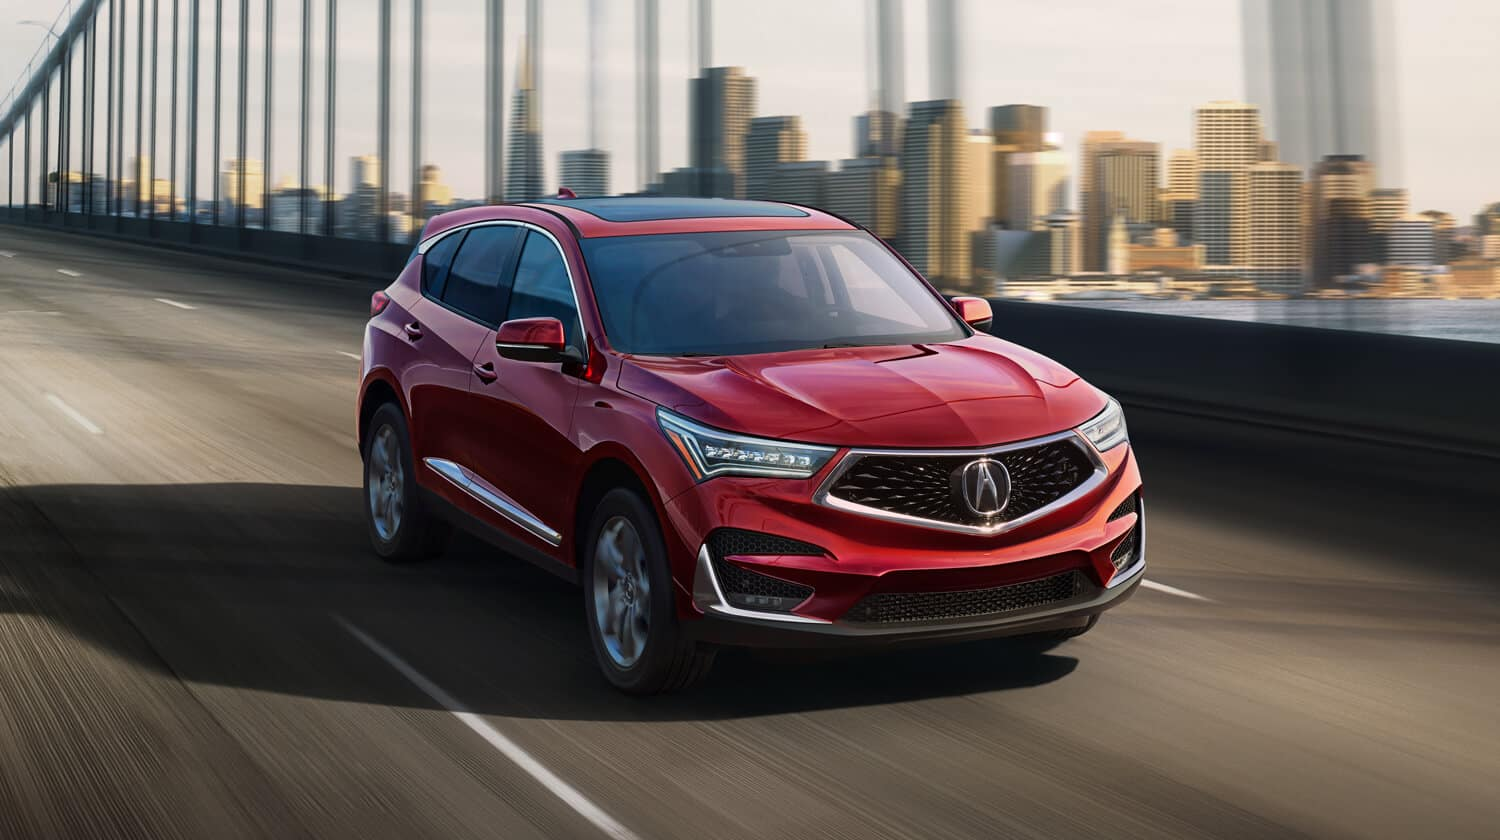 Check Out 2020 Acura Rdx Colors To Customize Your Next Luxury Suv